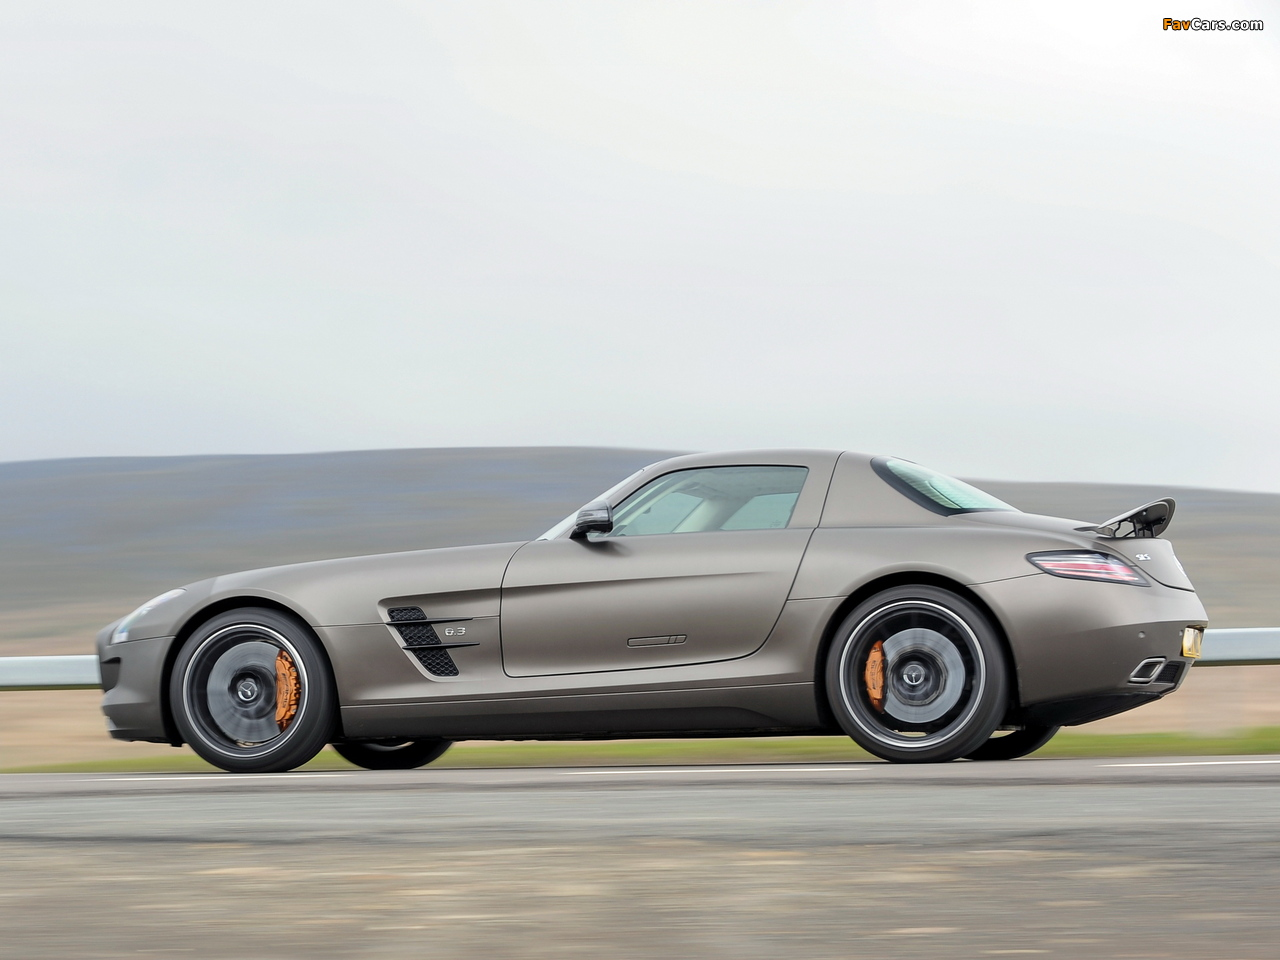 mercedes benz sls amg video download with Mercedes Benz Sls 63 Amg Gt Uk Spec C197 2012 Photos 272365 1280x960 on Most Viewed furthermore Mercedes Background 23531 in addition 593 2013 Mercedes Benz Sls Amg Gt 11 furthermore 1030519 besides Burj Al Arab Wallpapers.